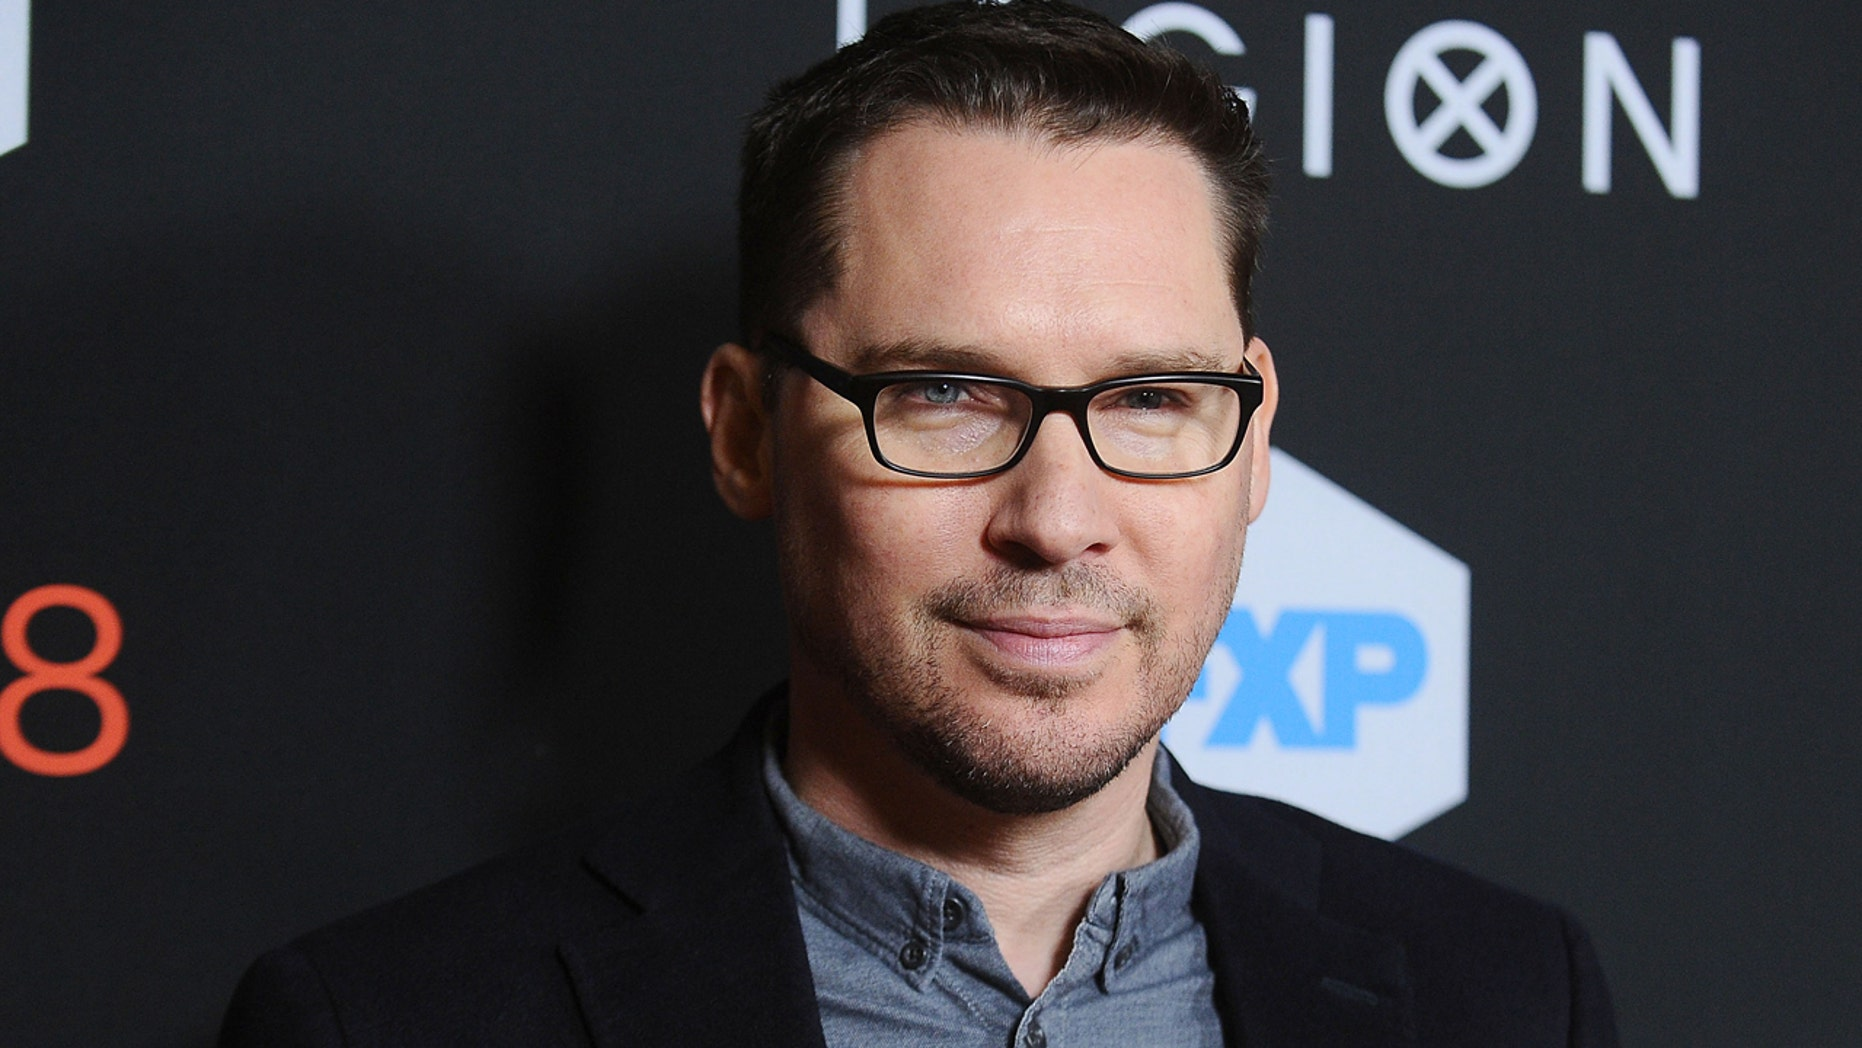 'Bohemian Rhapsody' director Bryan Singer has come out ahead of an upcoming article that will rehash sexual misconduct claims.